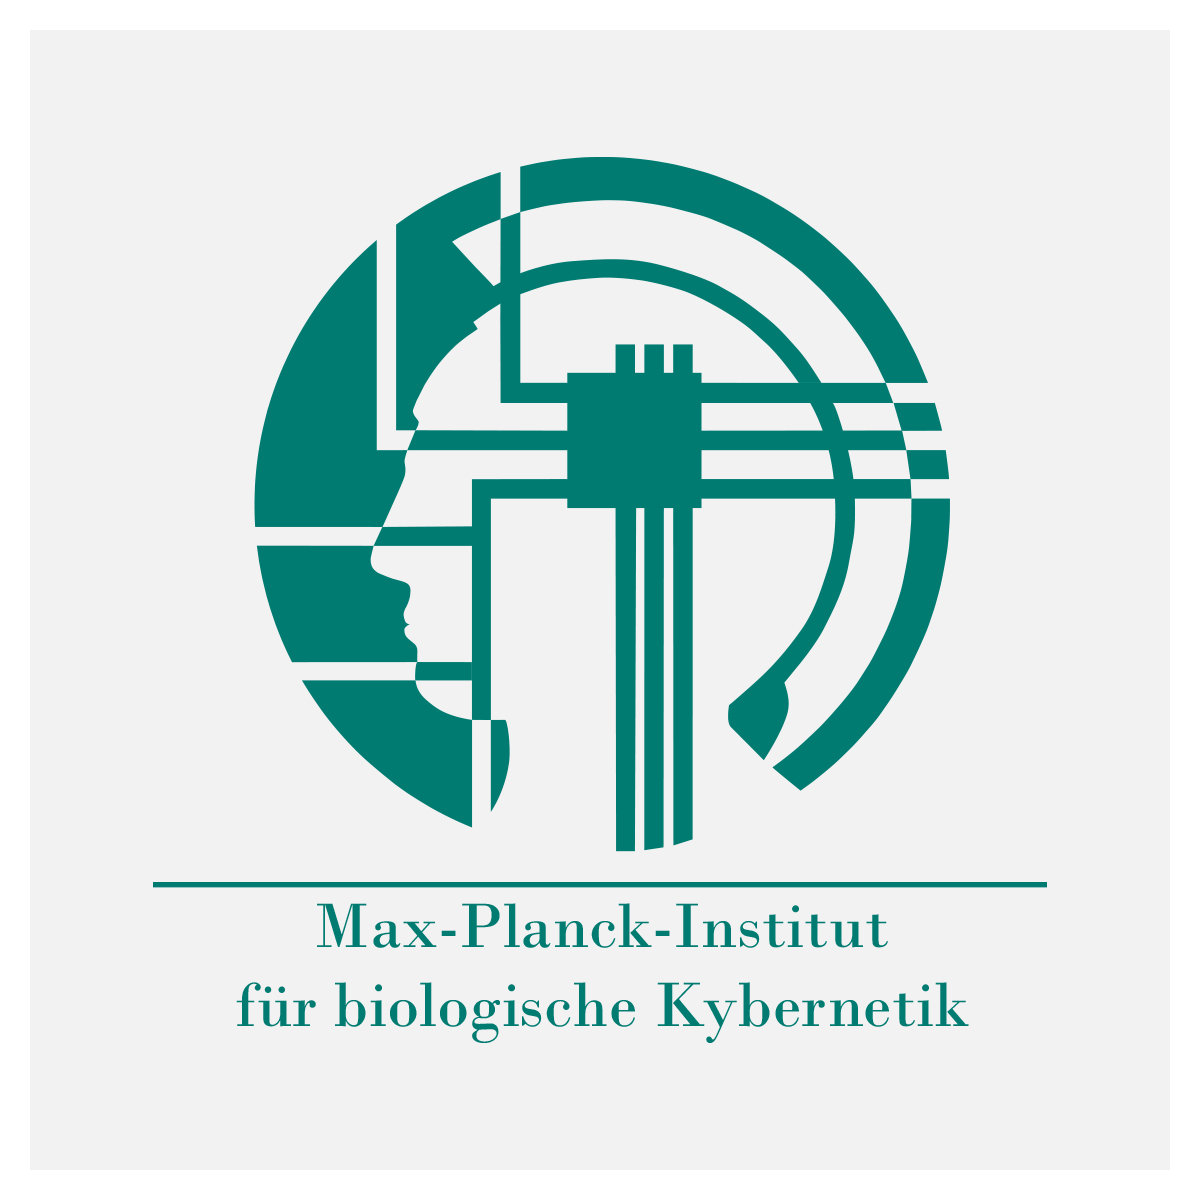 Logo of the Max Planck Institute for Biological Cybernetics